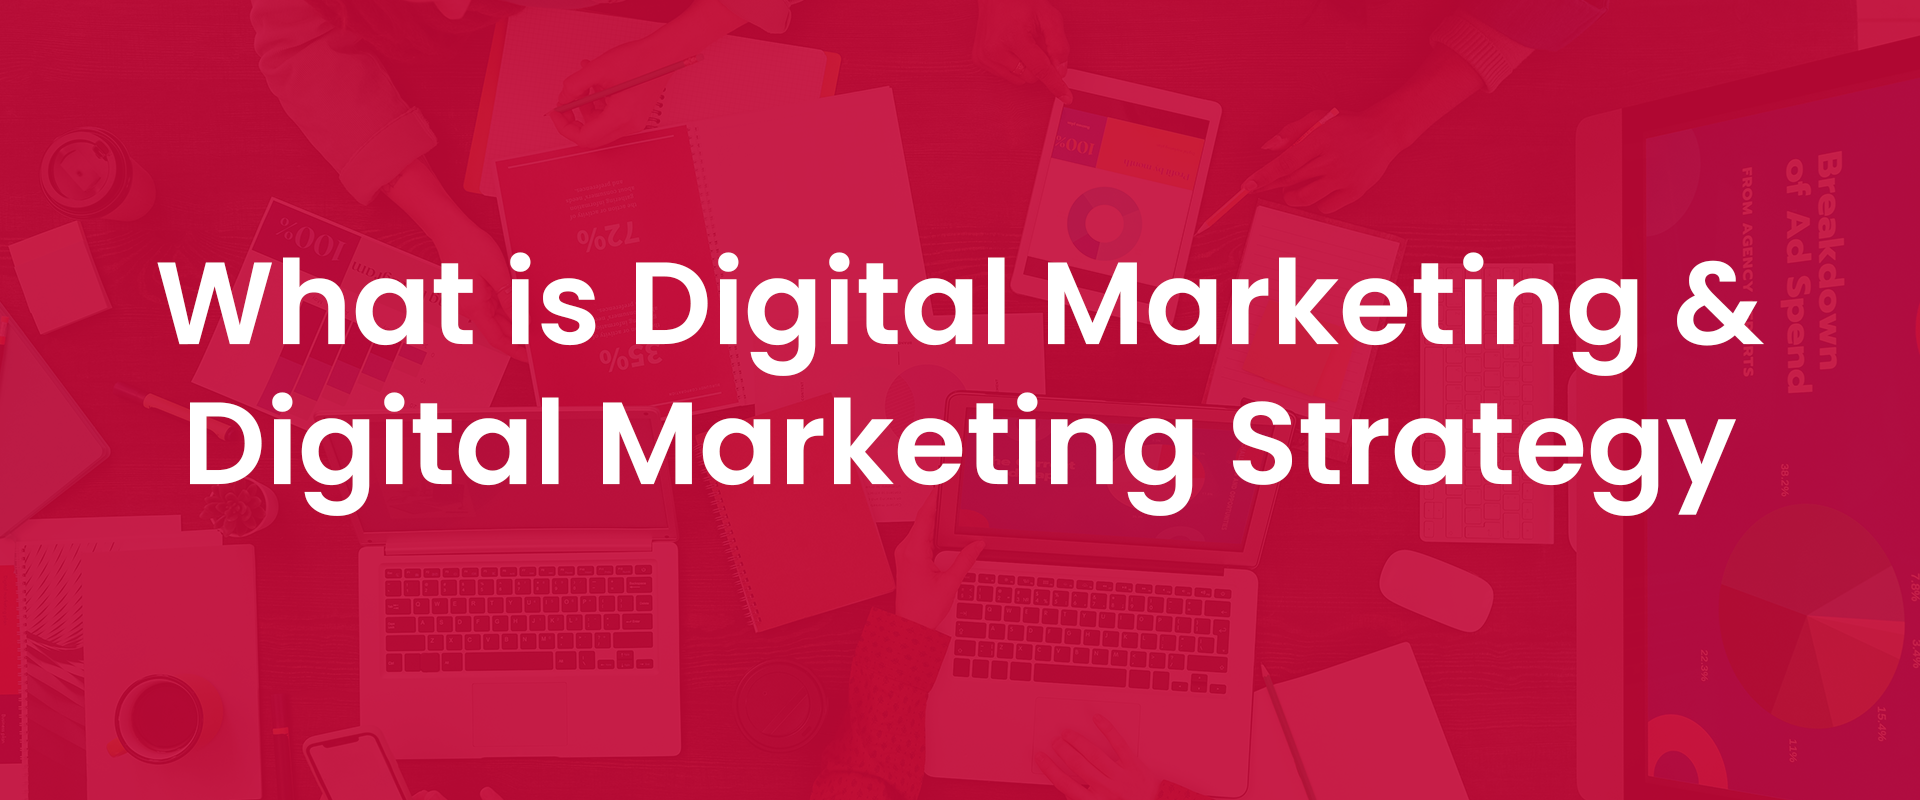 What is Digital Marketing & Digital Marketing Strategy cover